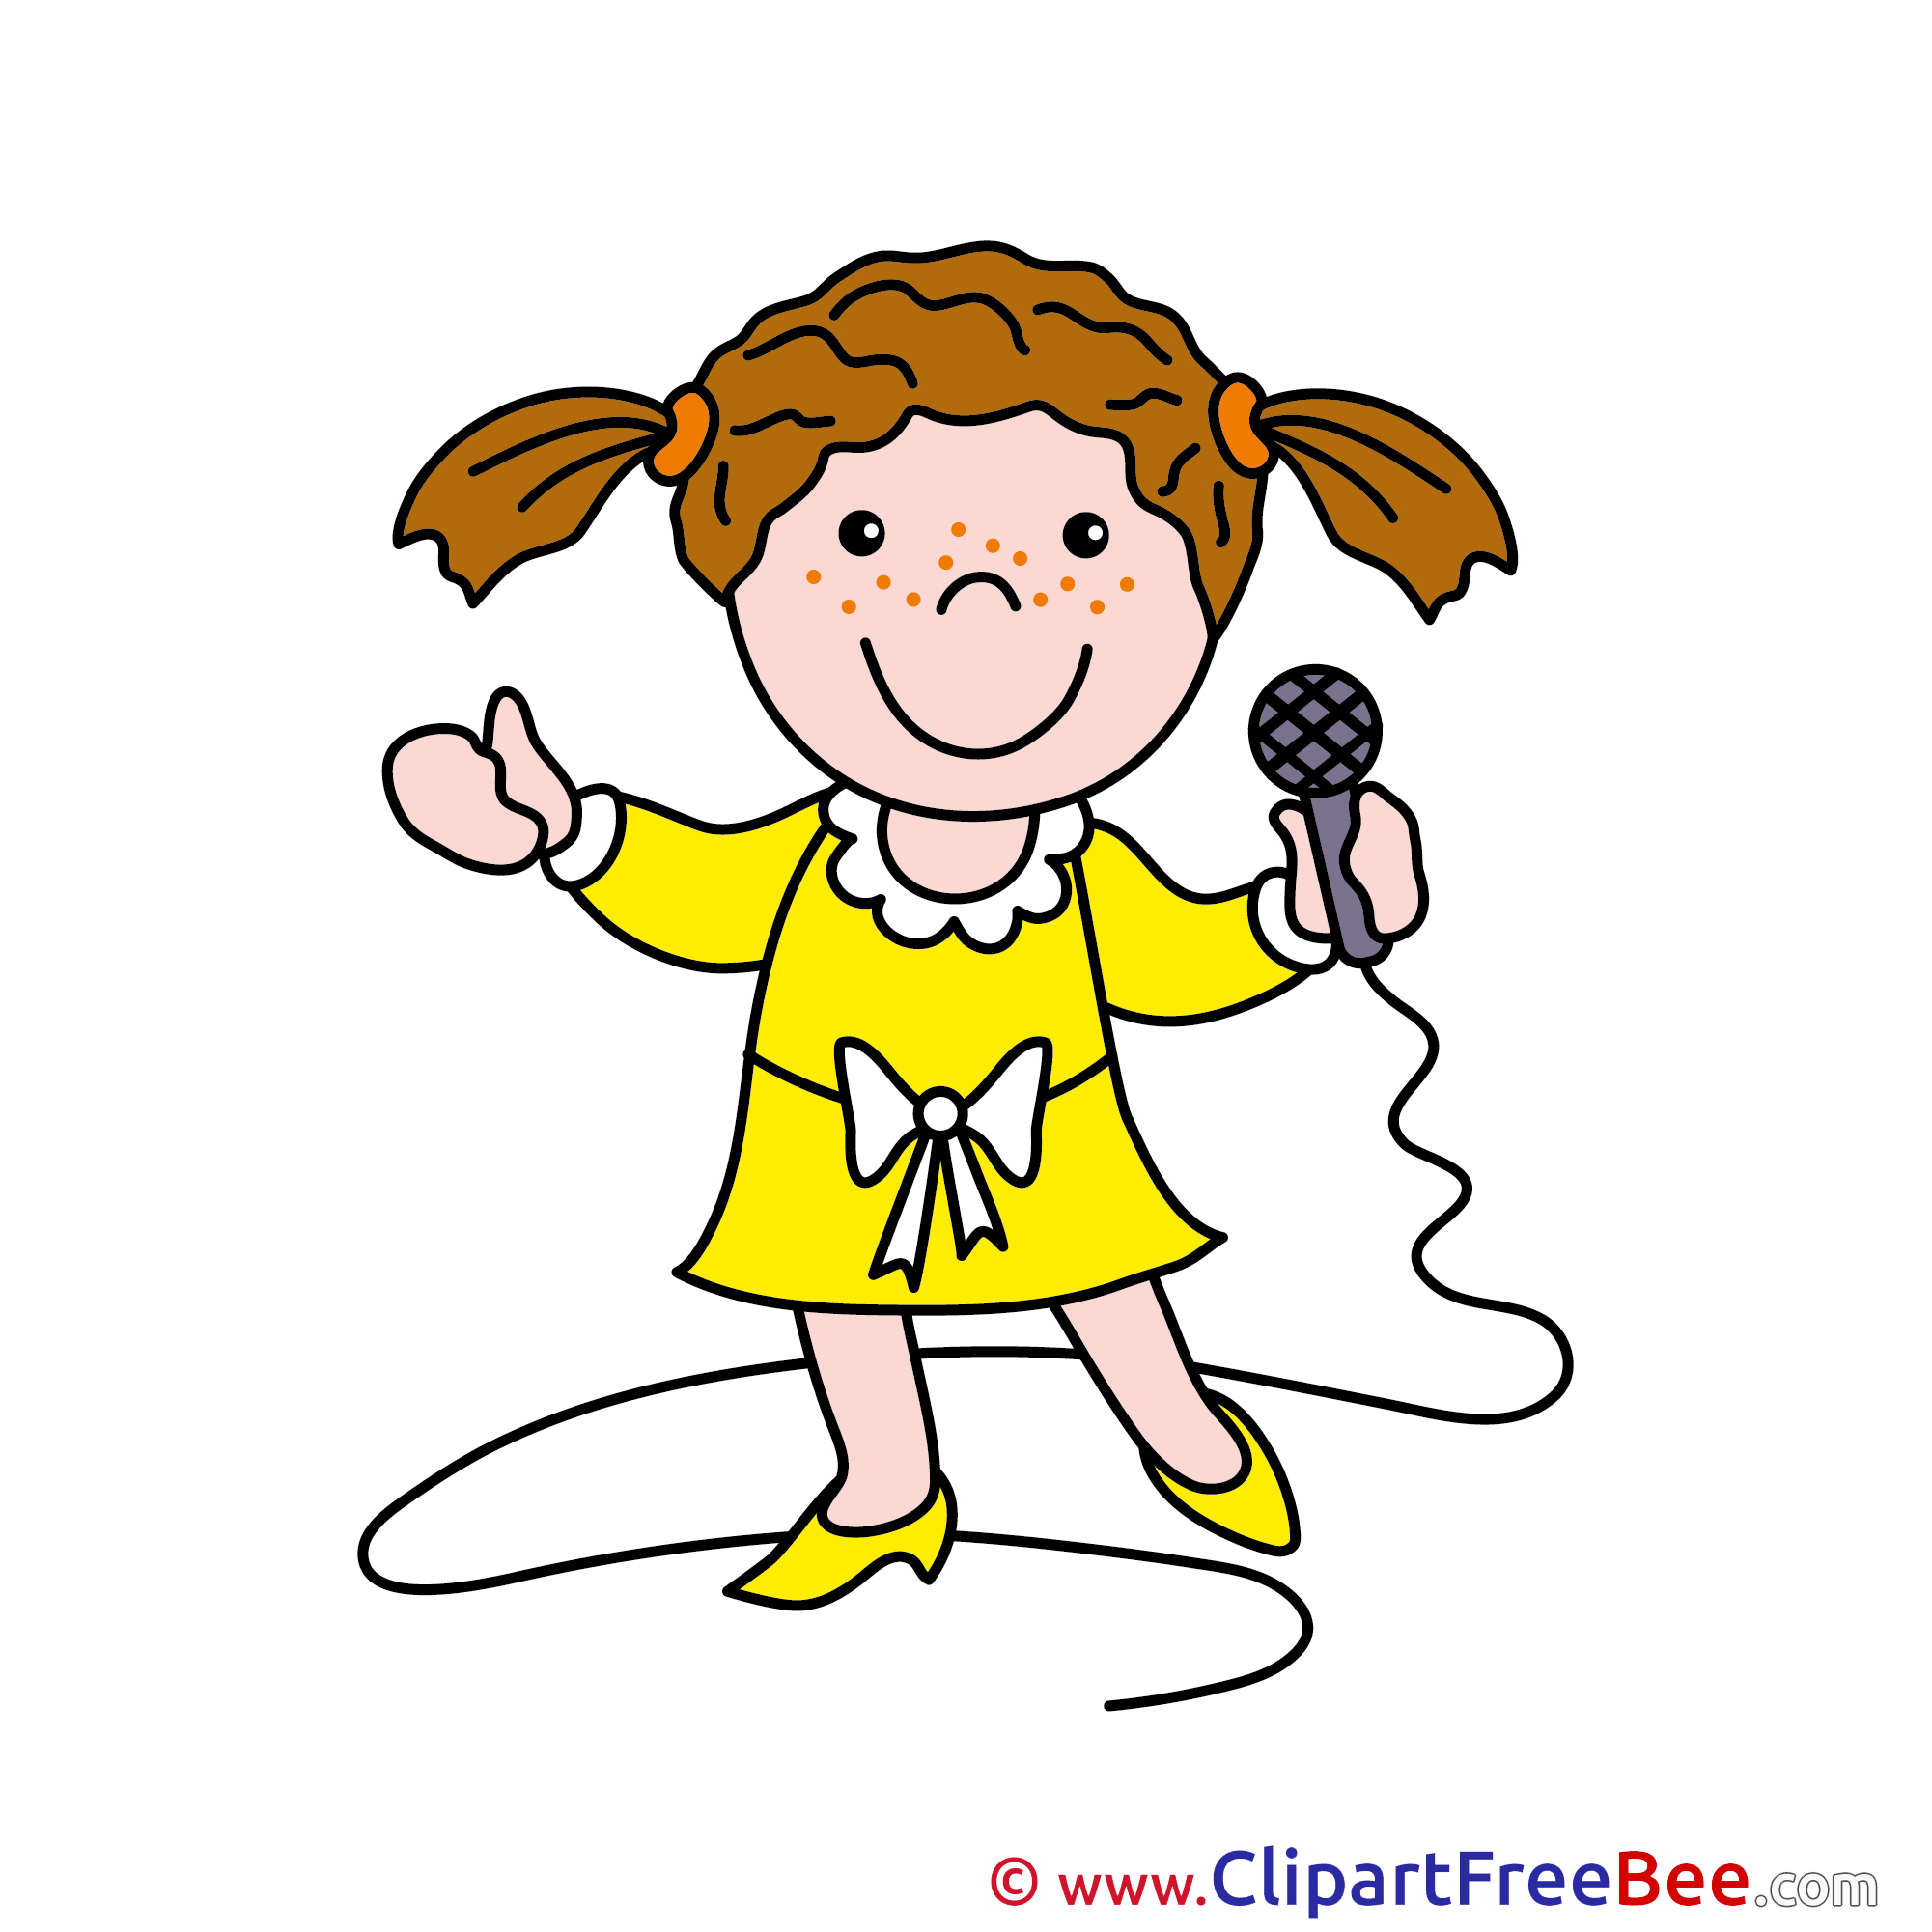 Microphone clipart happy Image Singer free Clipart download